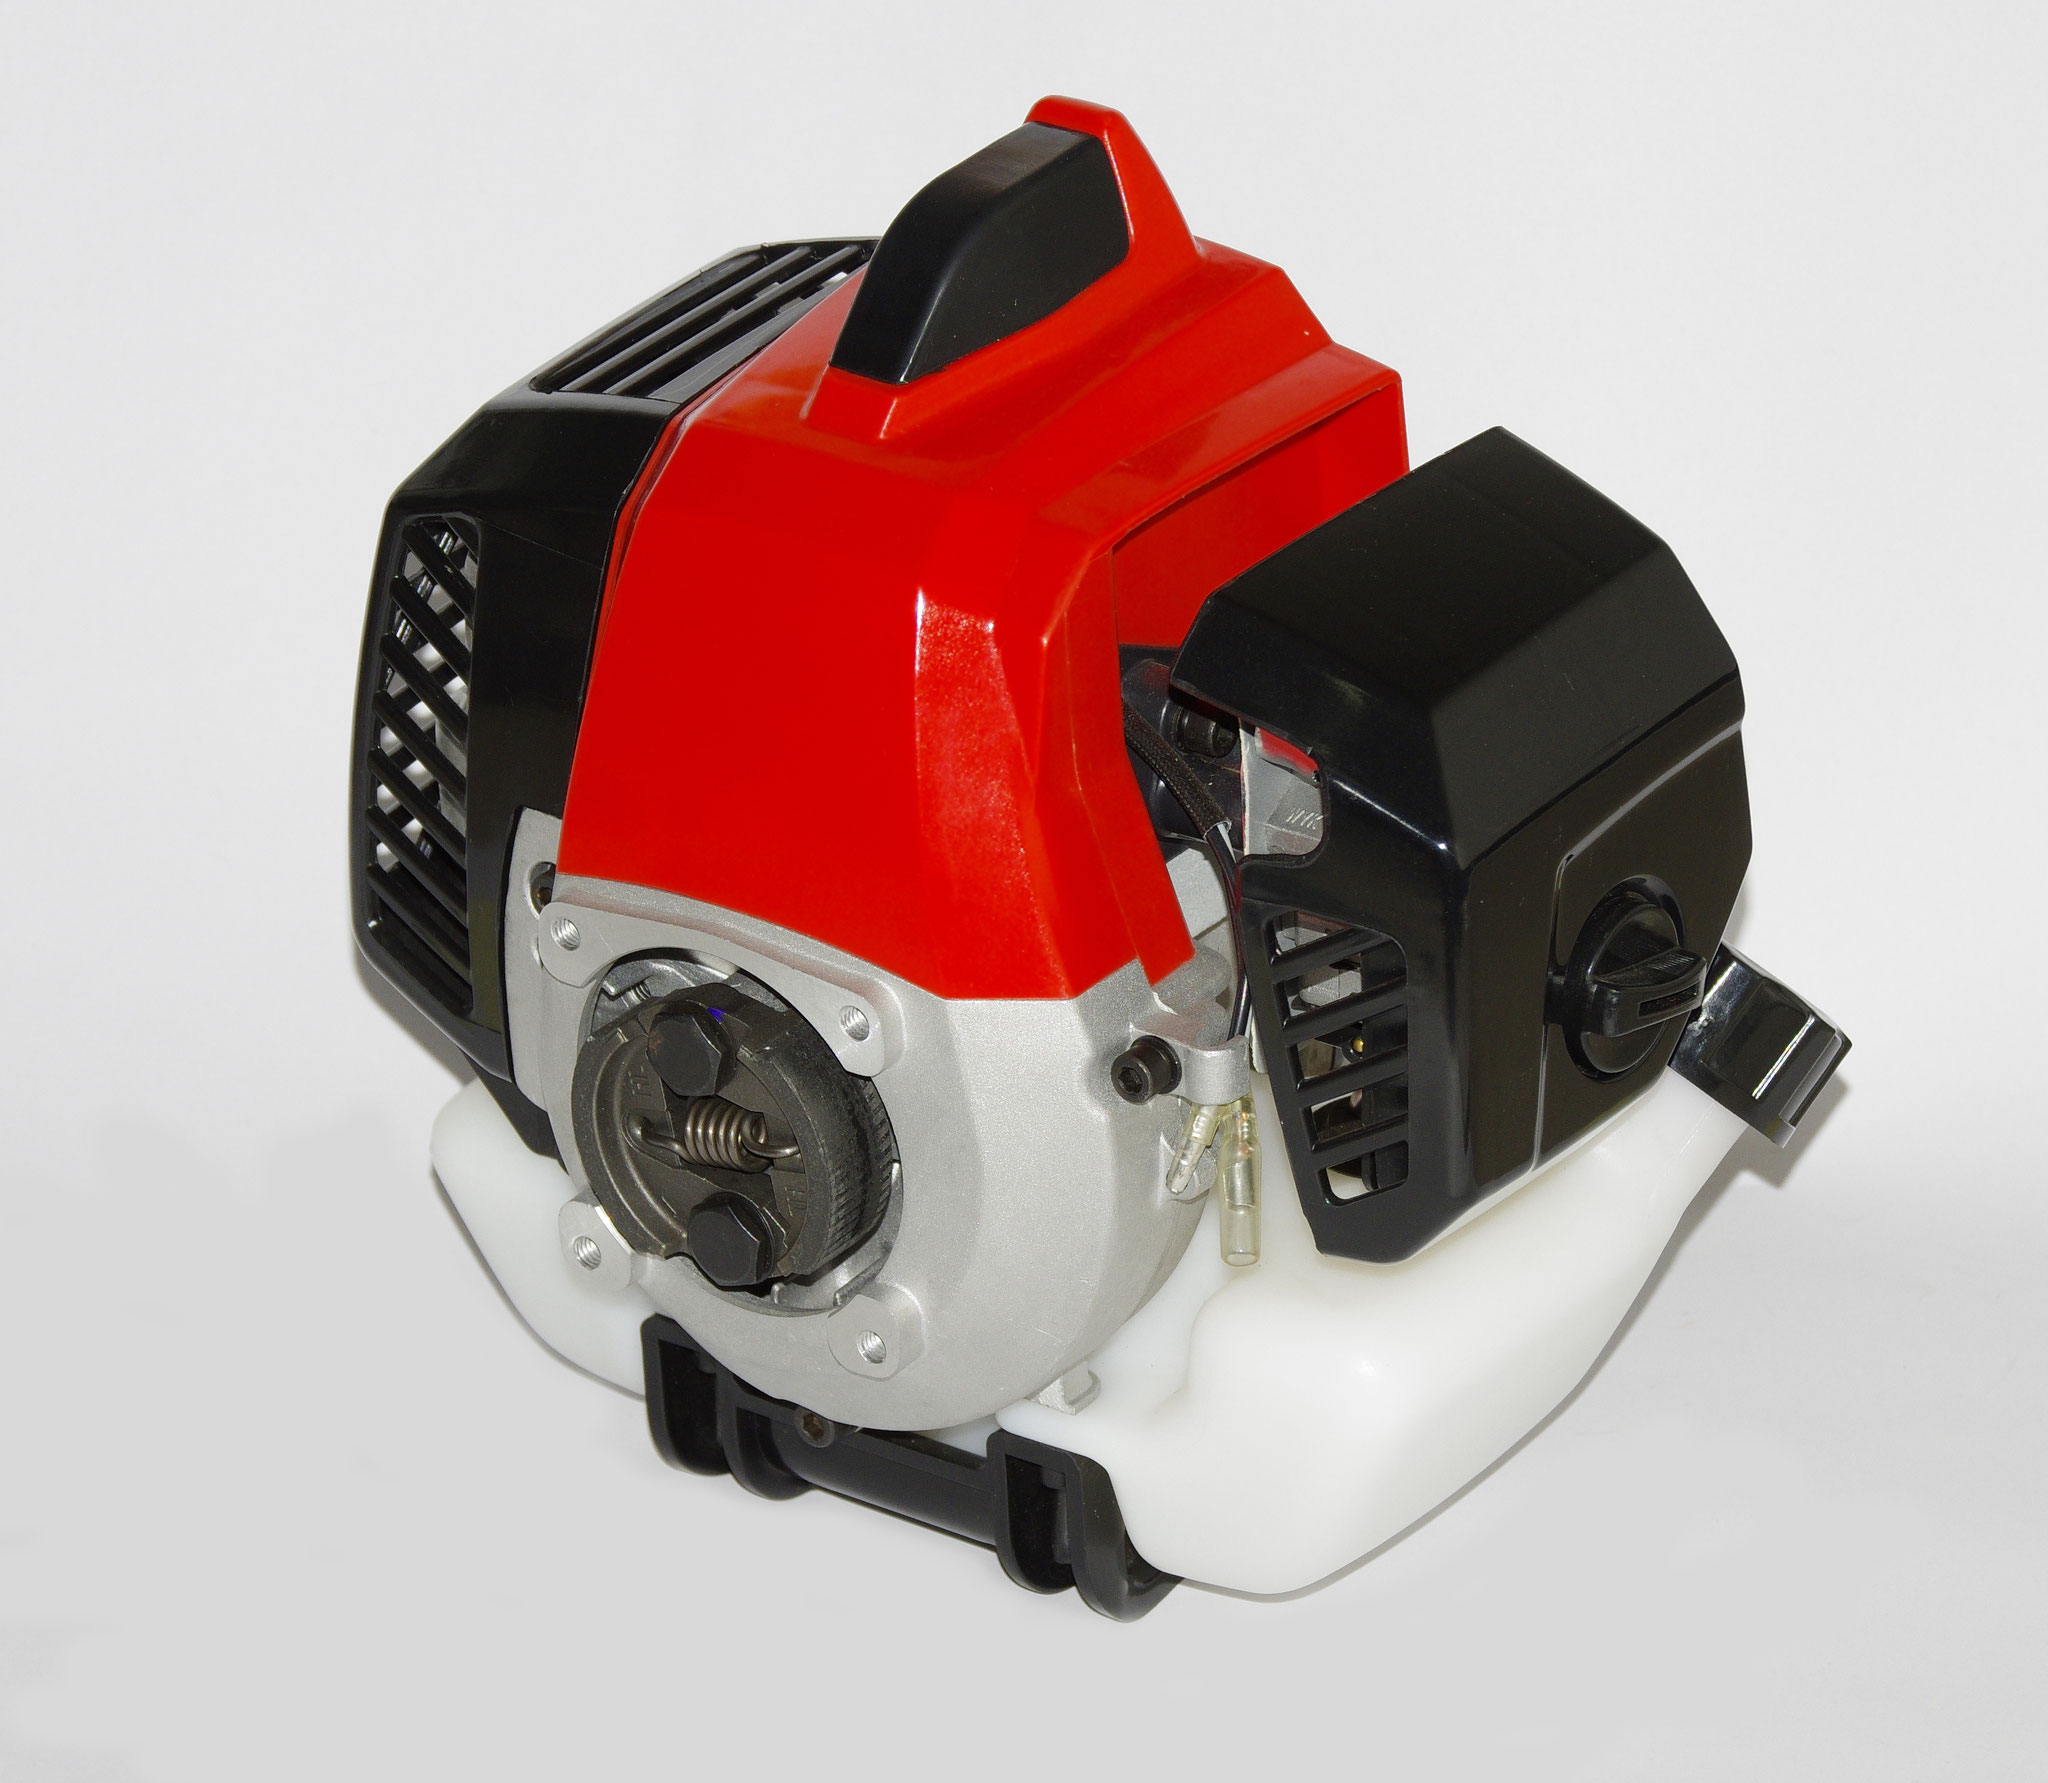 Professional Grade Small 2 Stroke Gasoline Engines